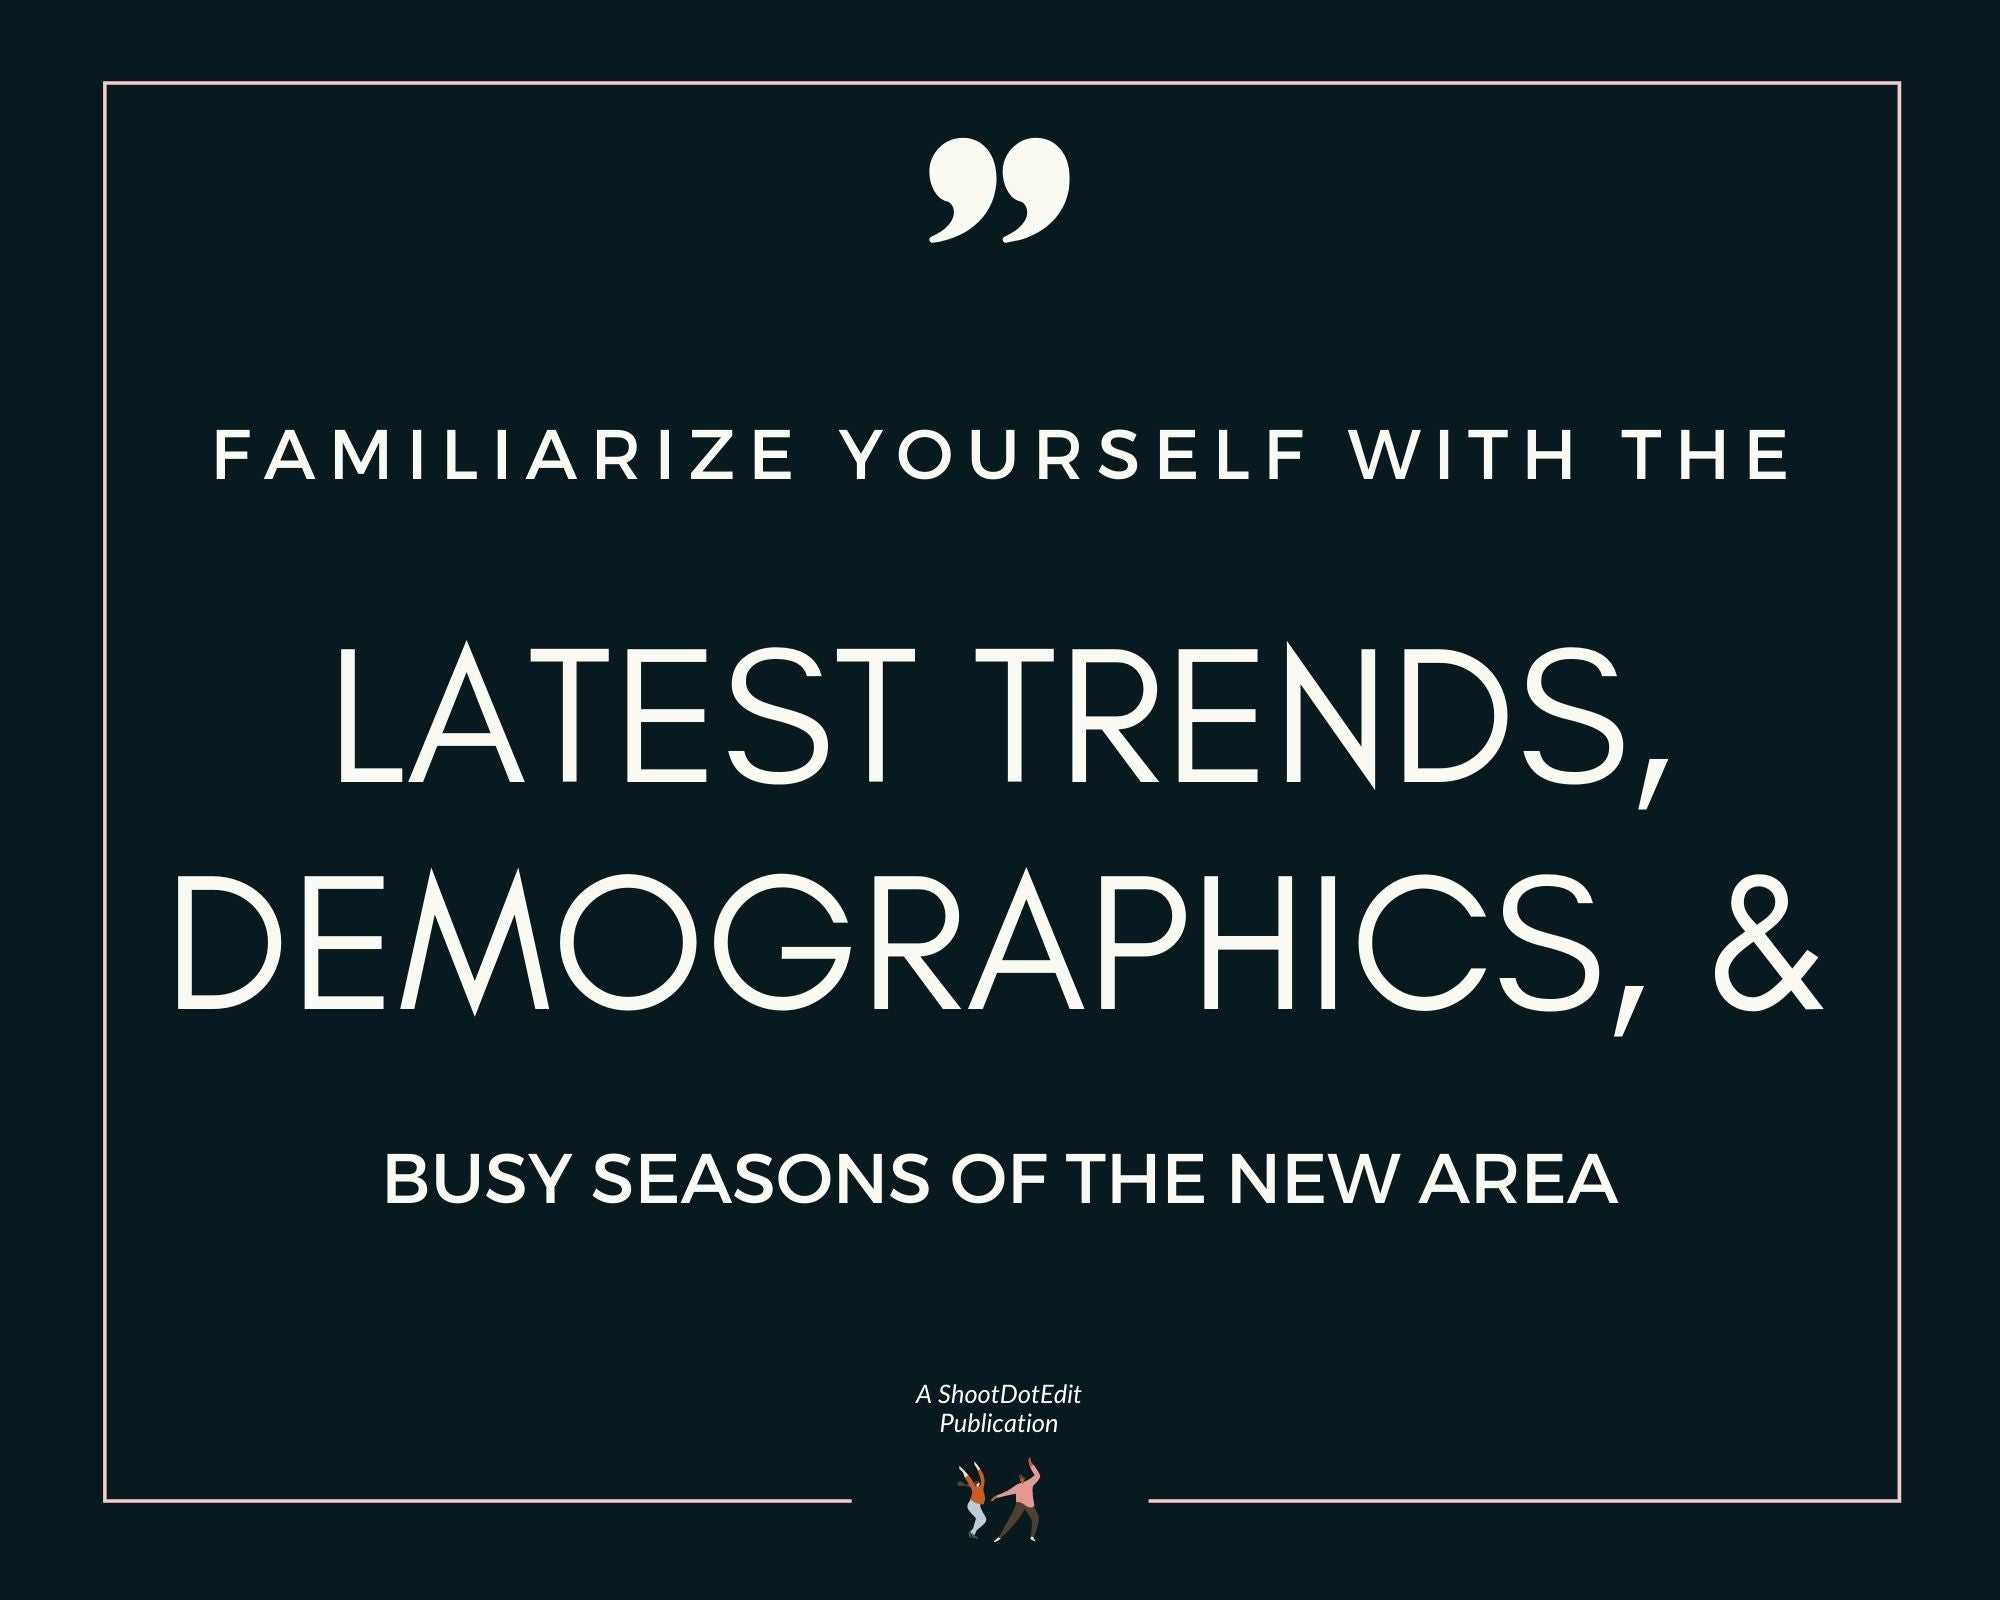 Infographic stating familiarize yourself with the latest trends, demographics, and busy seasons of the new area